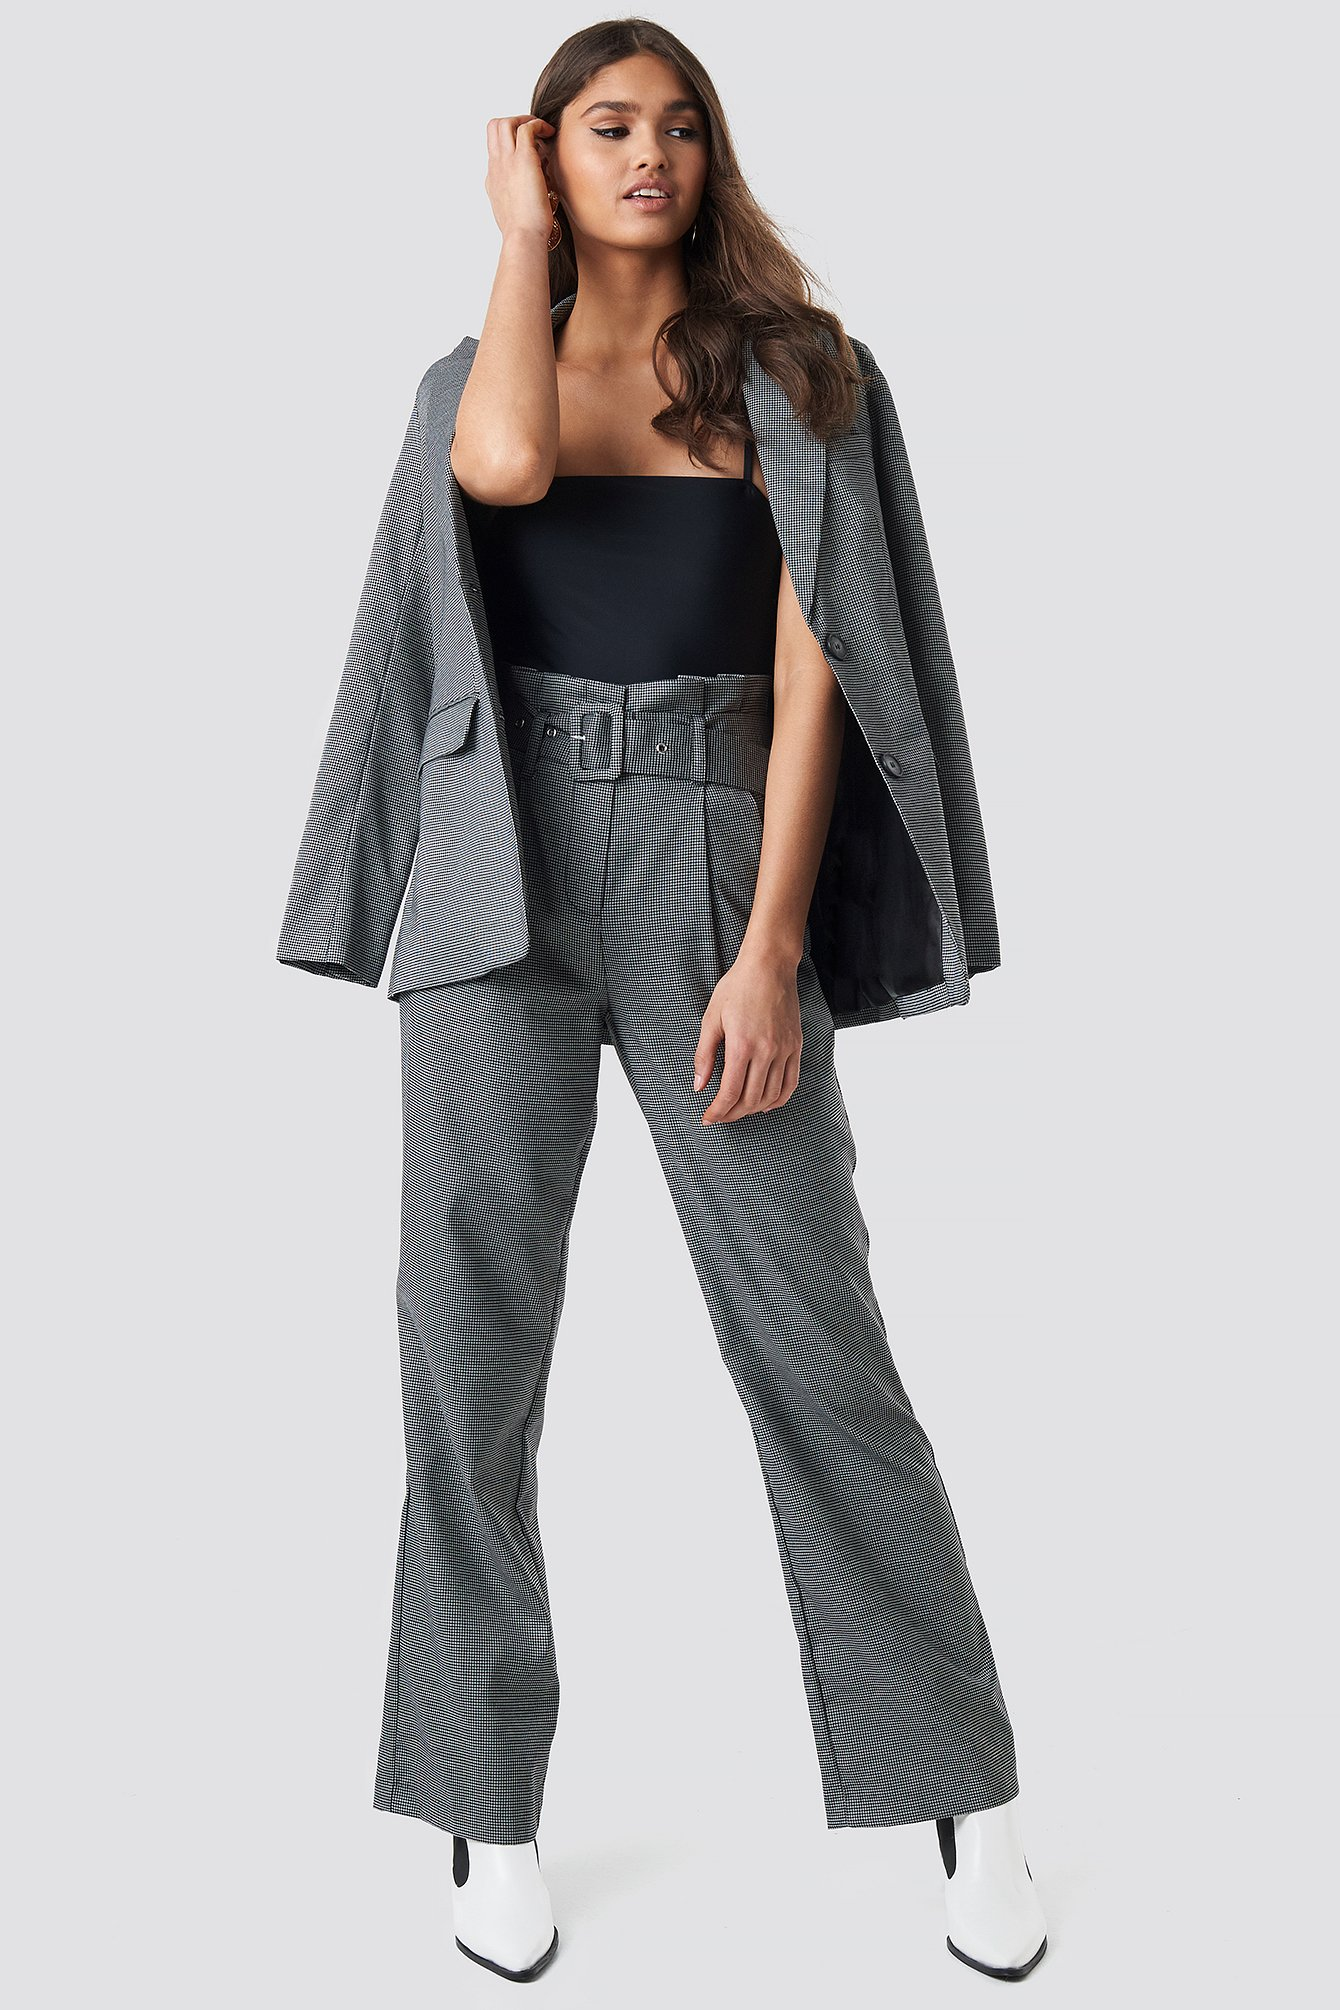 NA-KD Classic Small Check Paperbag Suit Pants - Grey